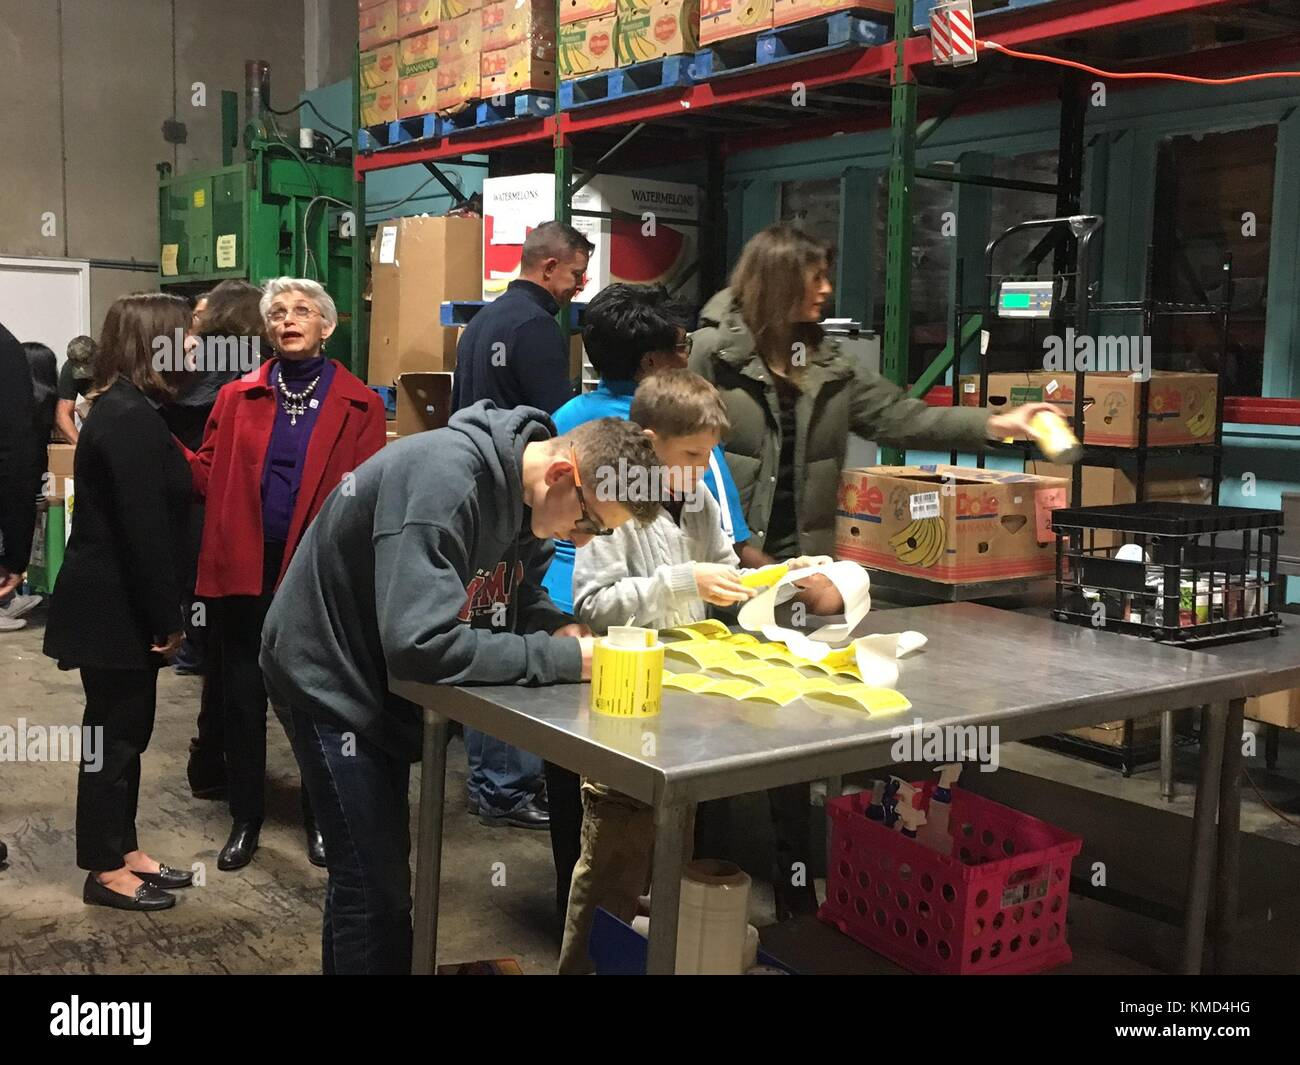 Texas, USA. 06th Dec, 2017. U.S. First Lady Melania Trump, right, and Karen Pence, left, assist at the Coastal Bend - Stock Image